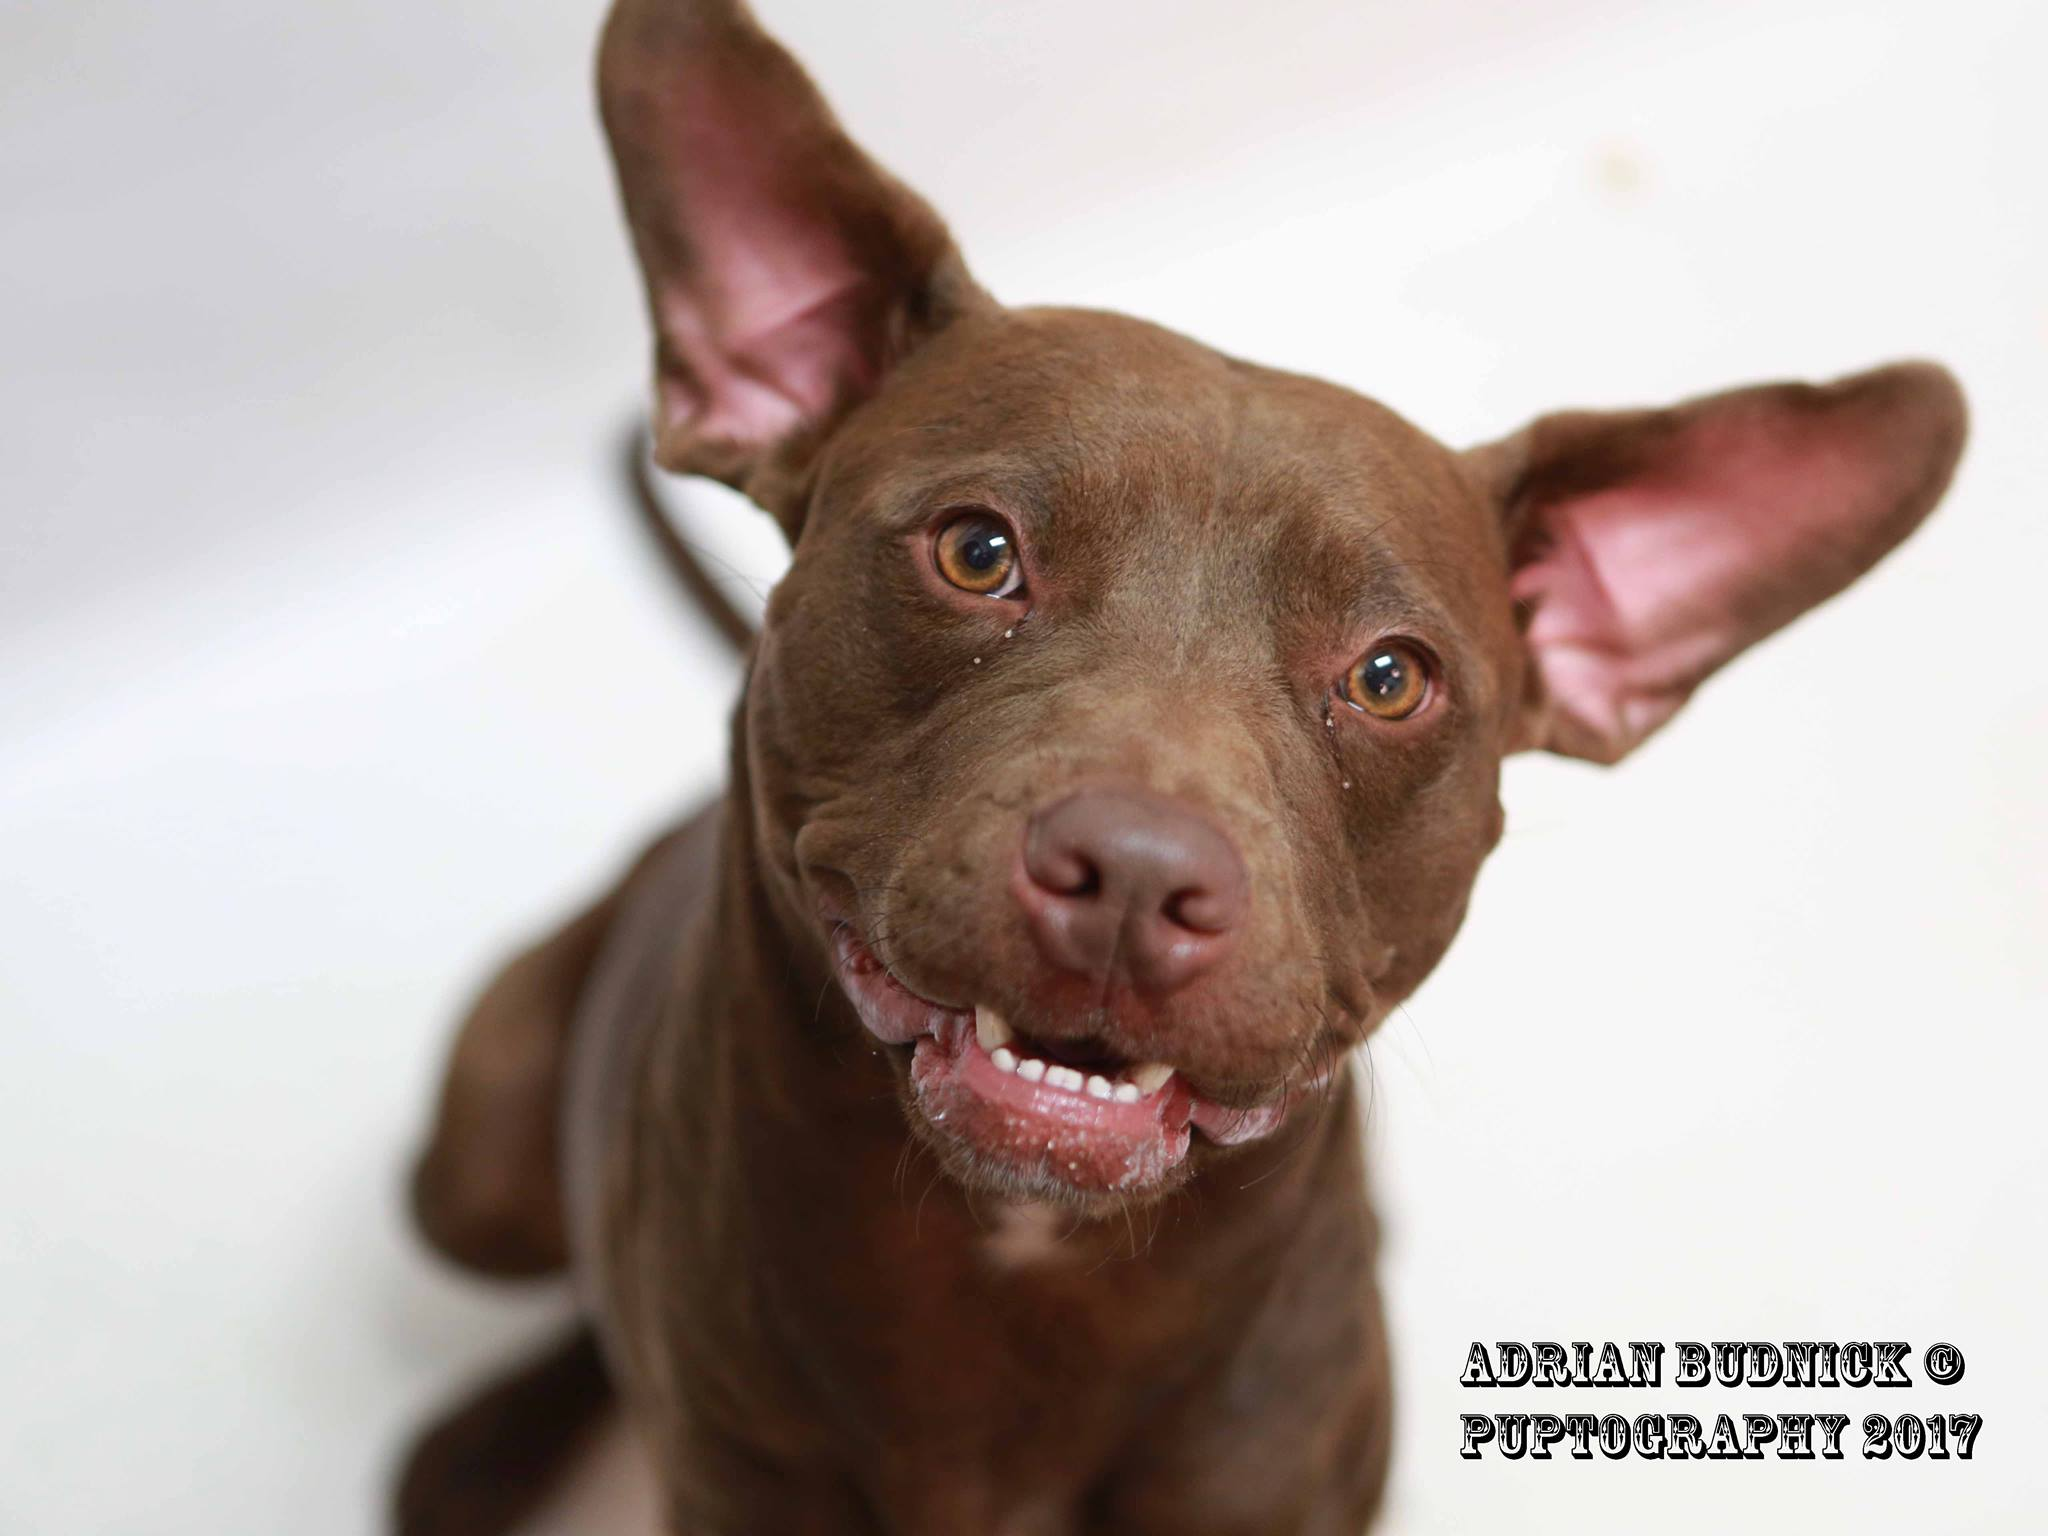 Chocolate A155956 is 11 month old pit bull. She is available at Metro Nashville Animal Care and Control is located at 5125 Harding Place Nashville